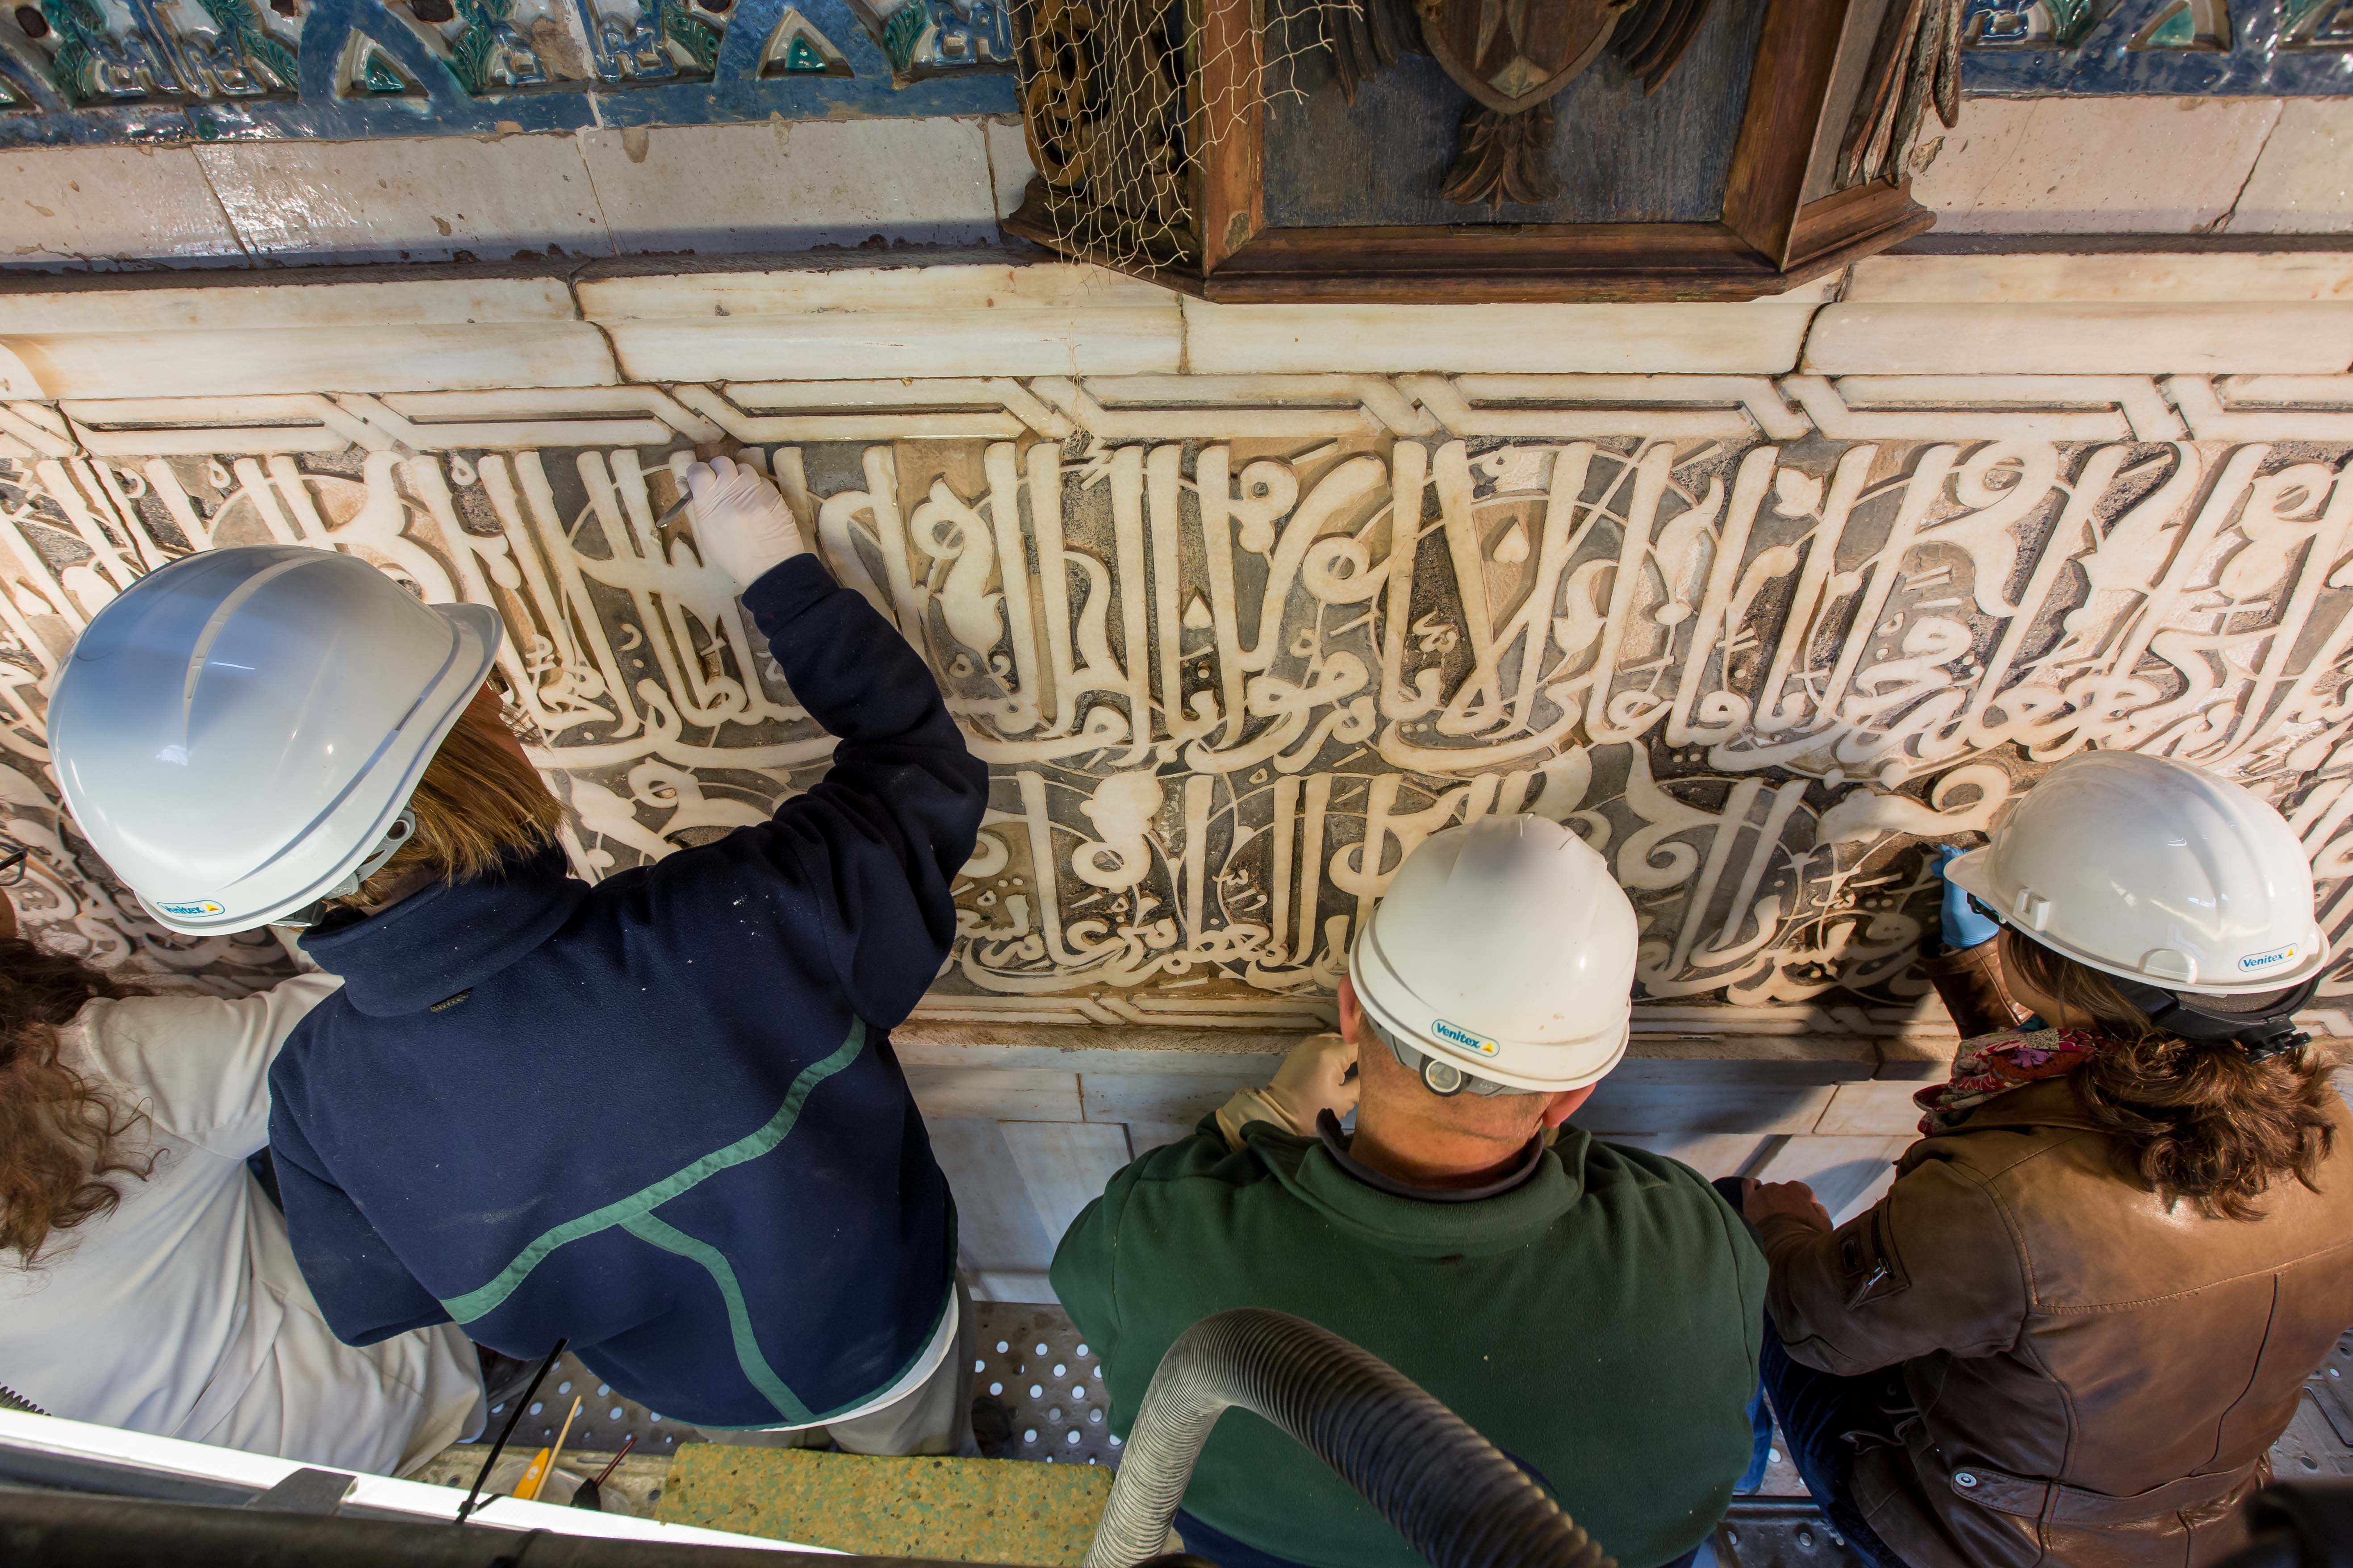 The restoration of the Puerta de la Justicia reveals decorative details and craft techniques used in the mediaeval Alhambra